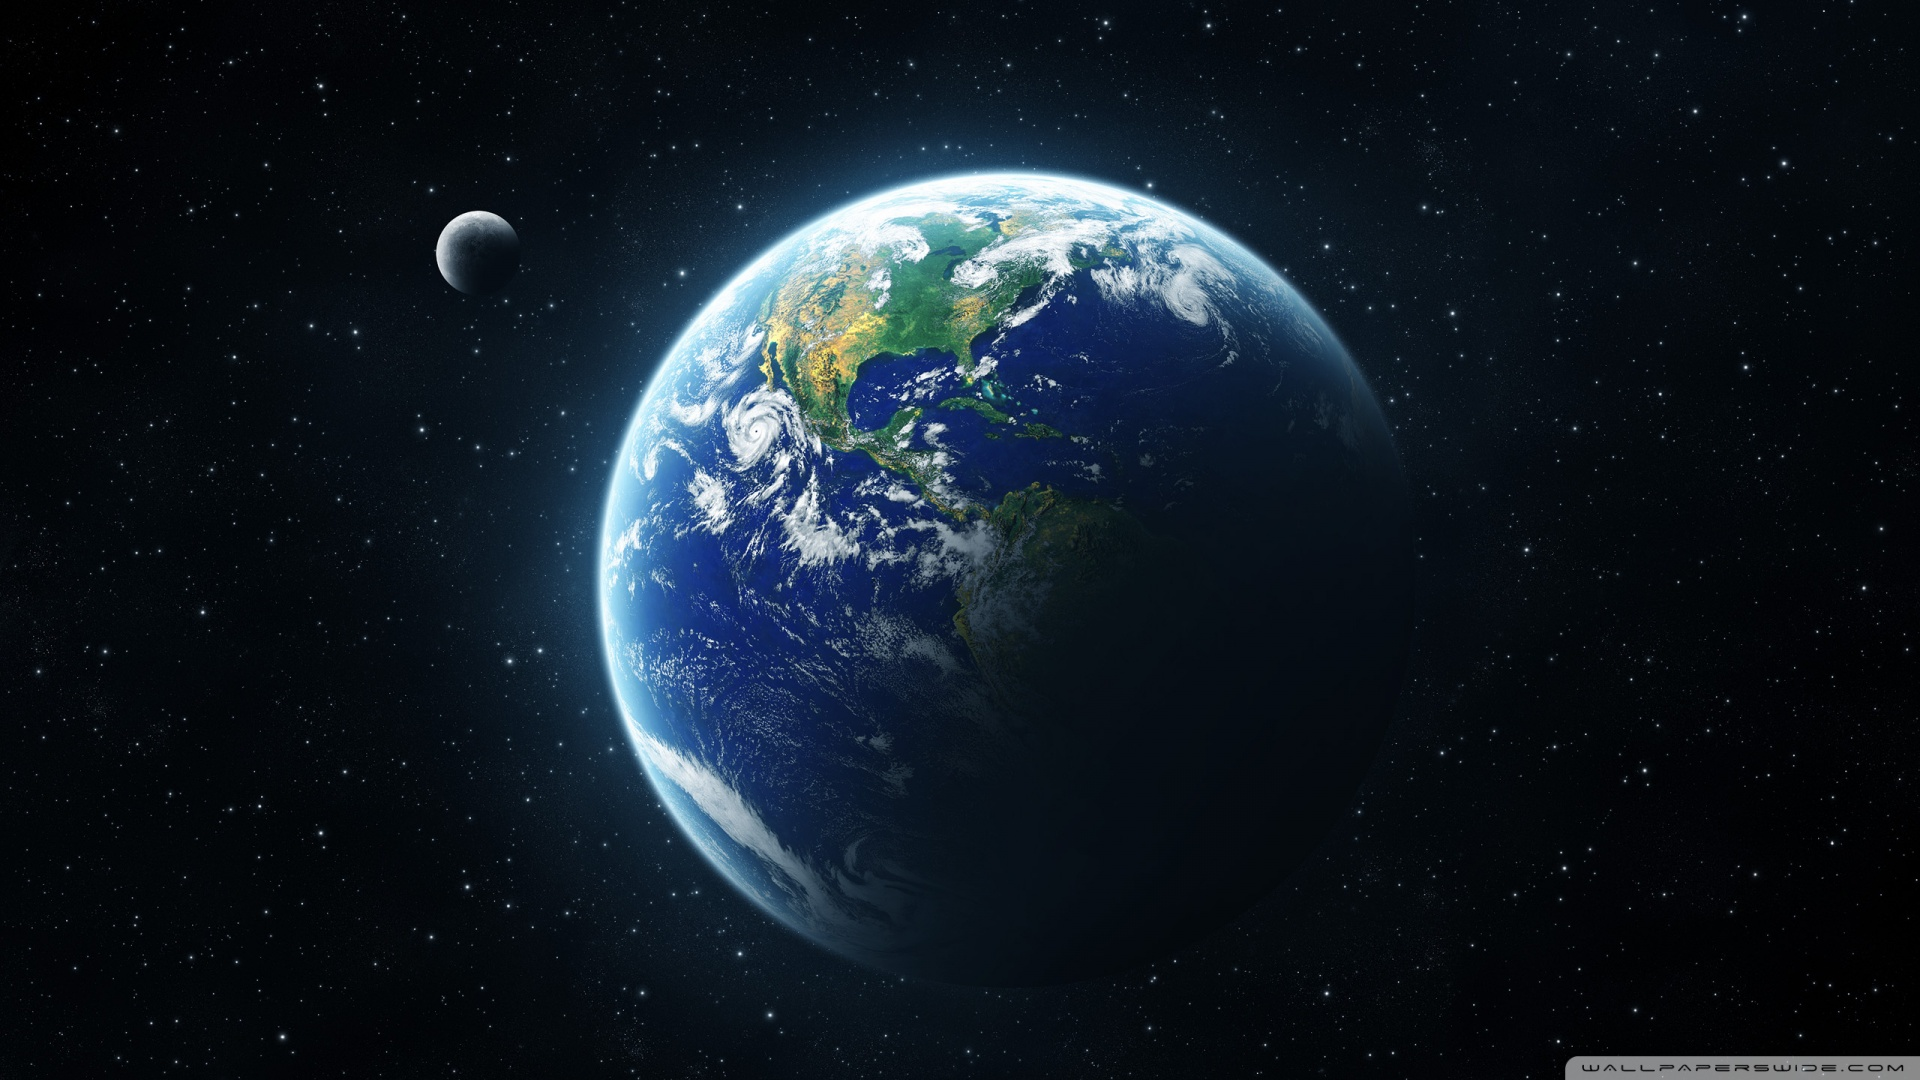 Earth and Moon Wallpaper HD